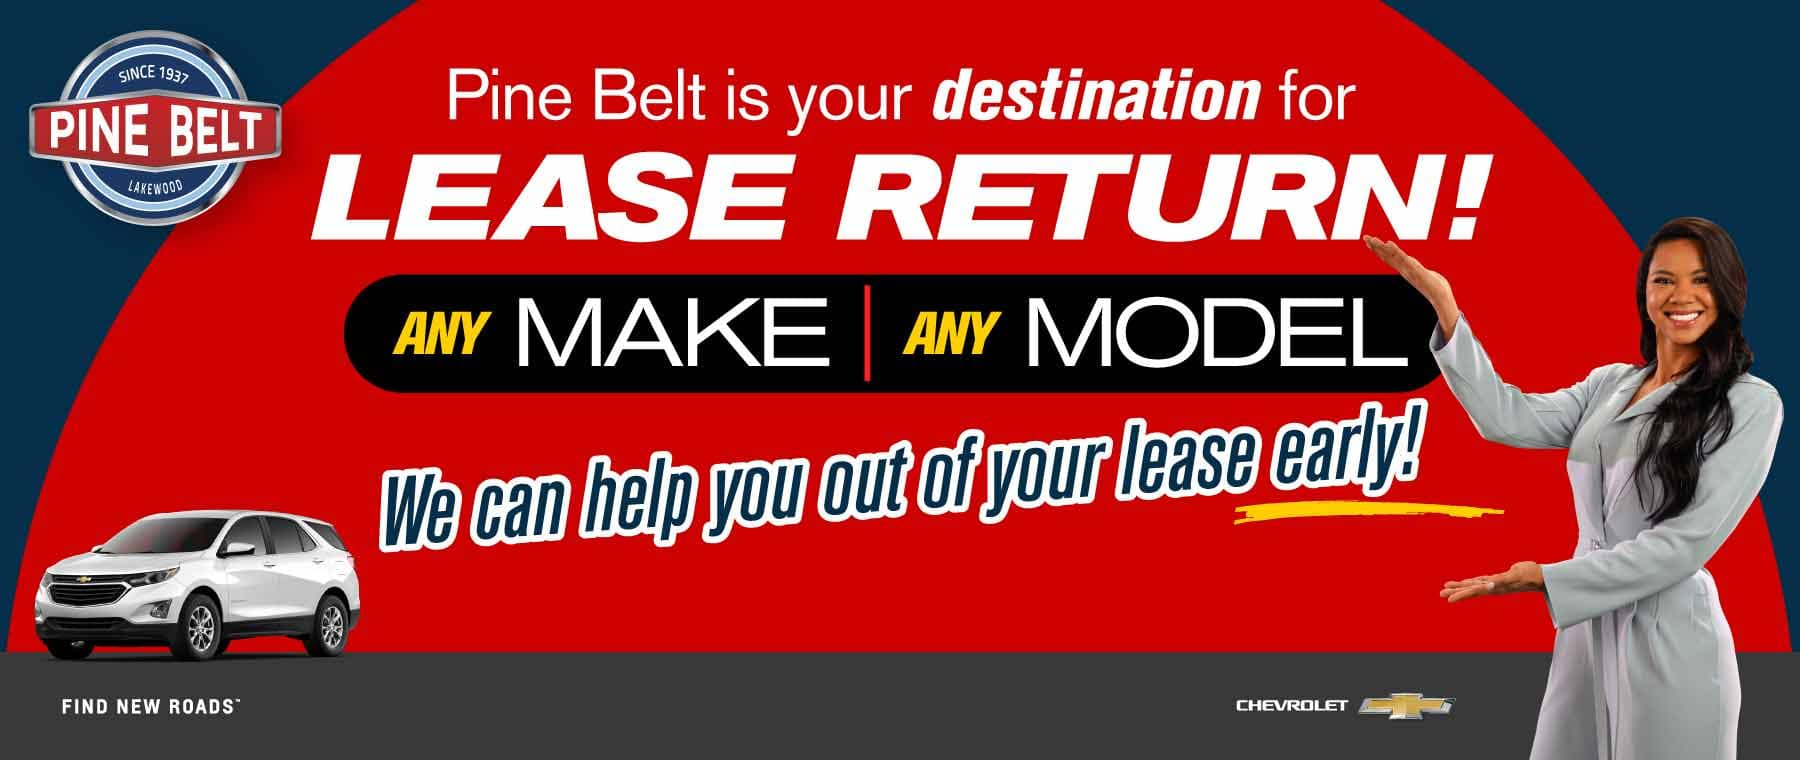 Chevy Lease Return - Lease Return Center for all makes and models at Pine Belt